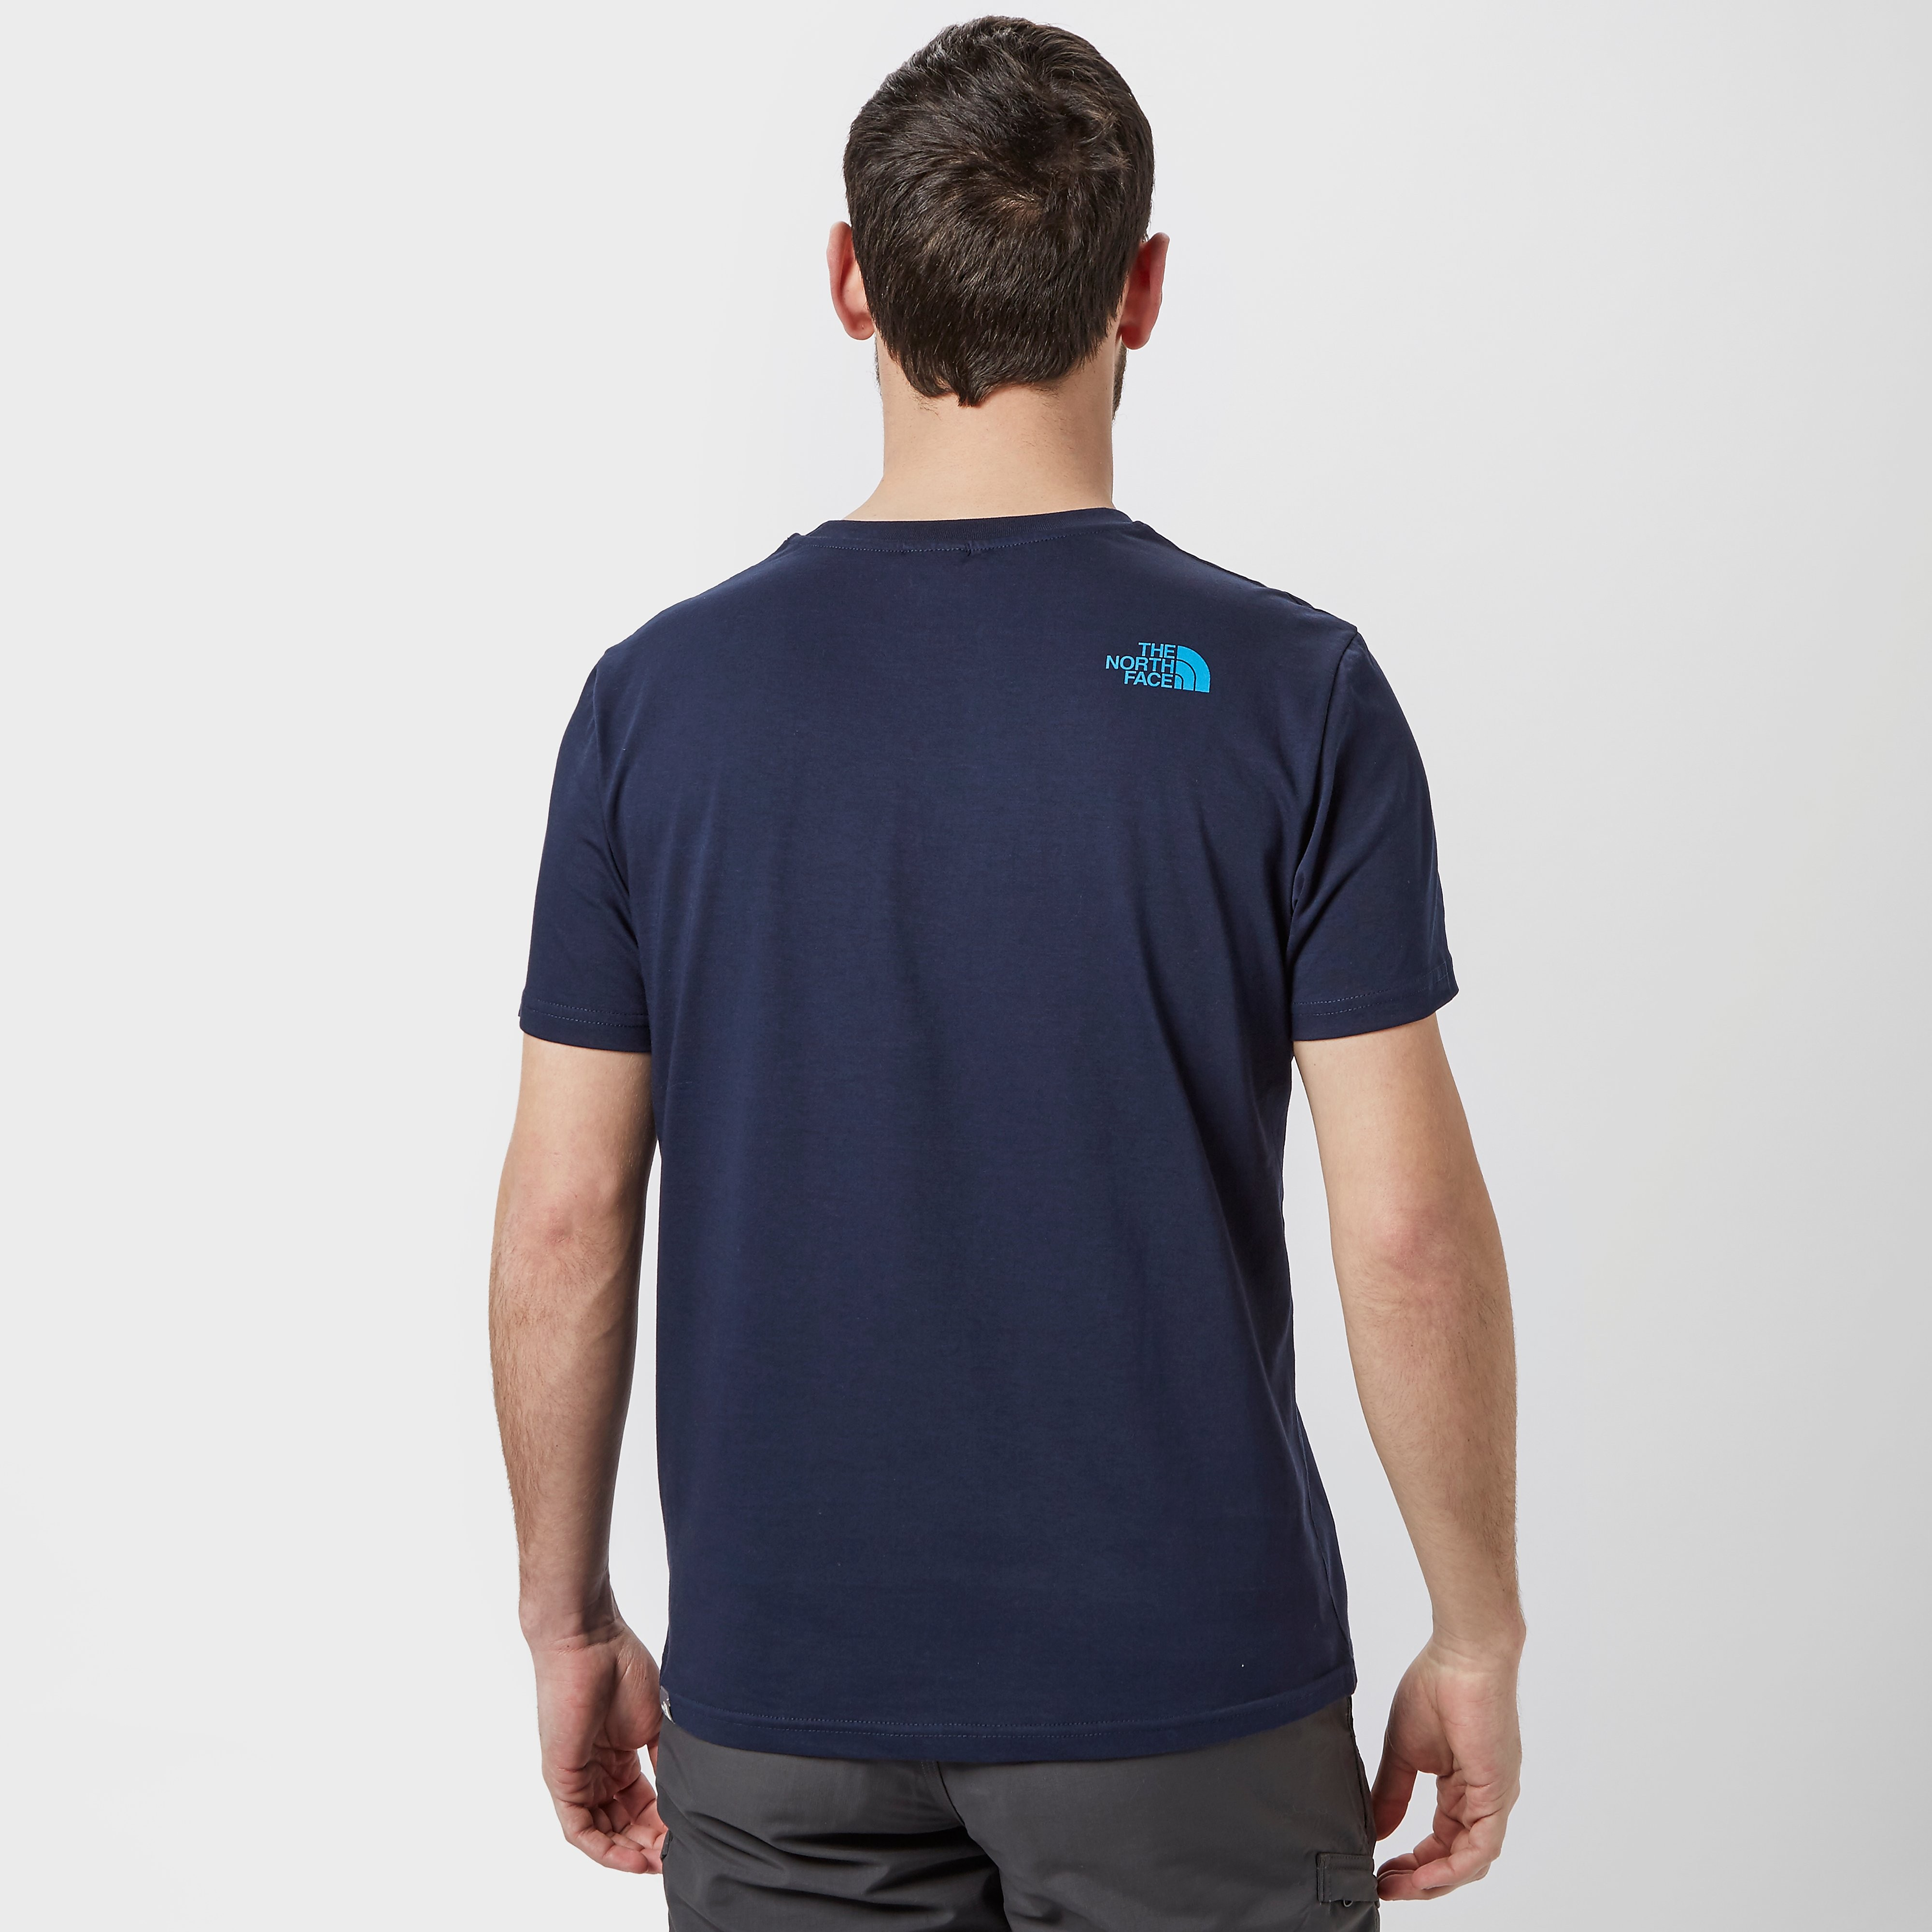 The North Face View Men's T-Shirt